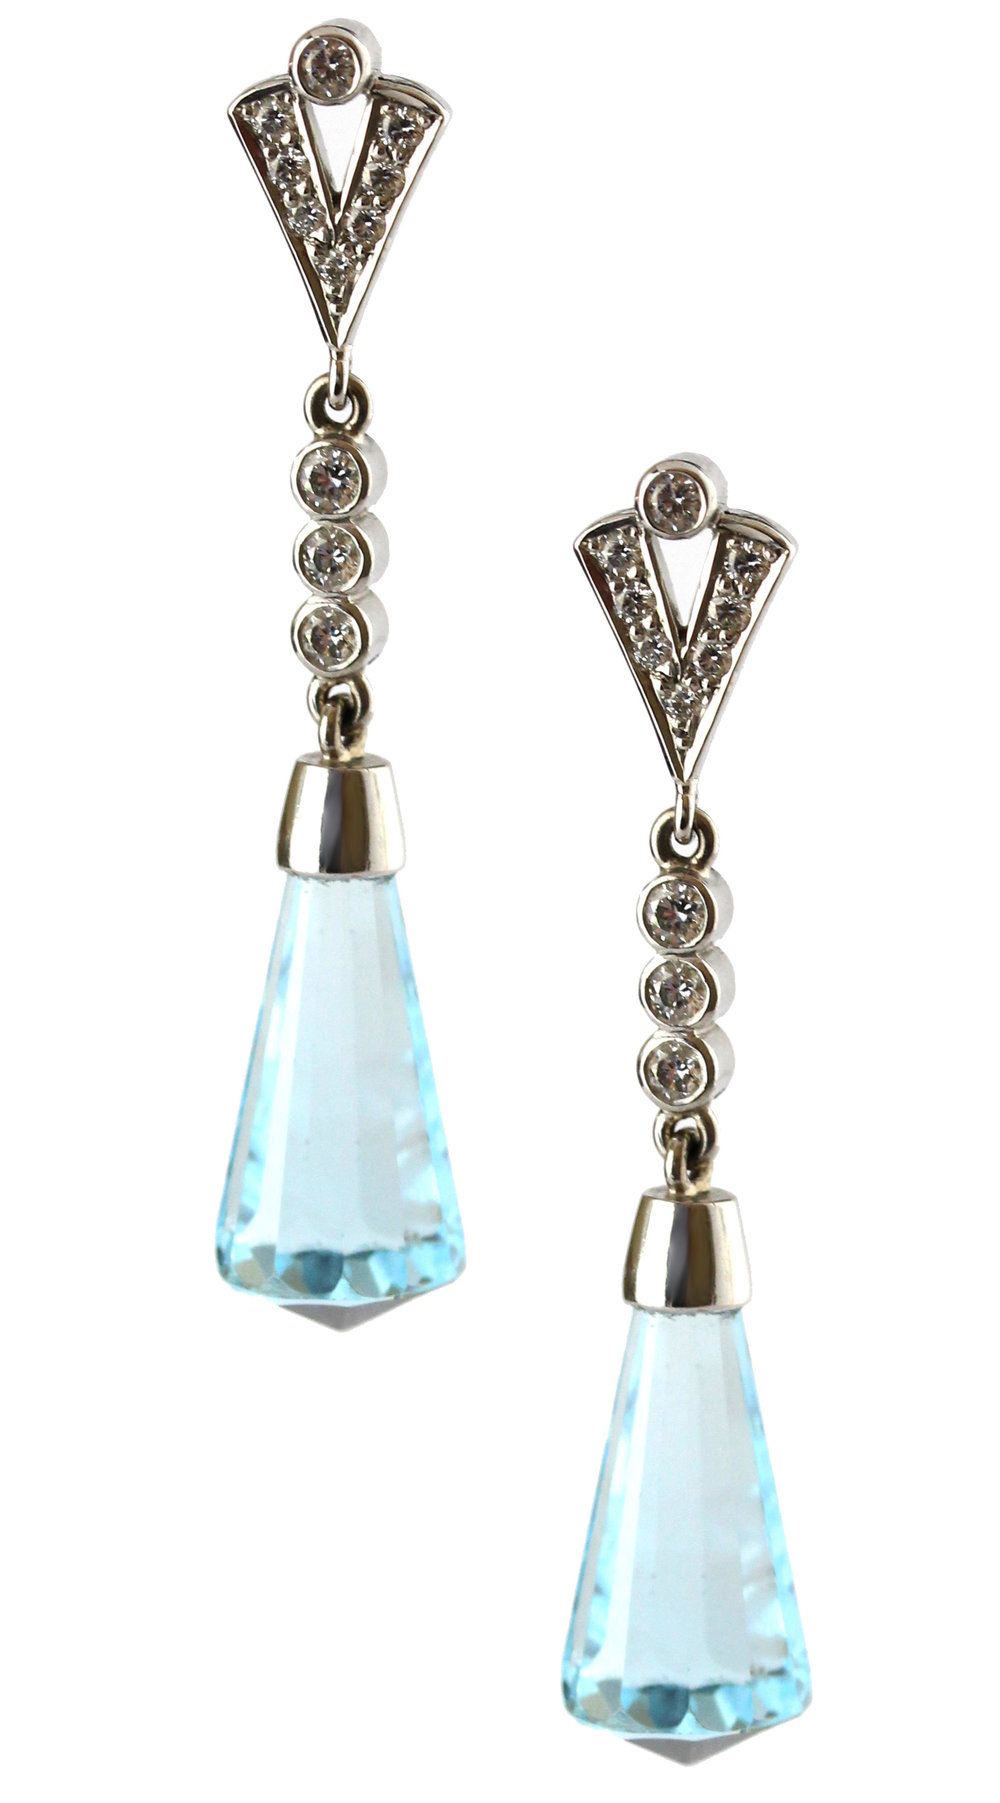 Blue topaz and diamond drop earrings in white gold.